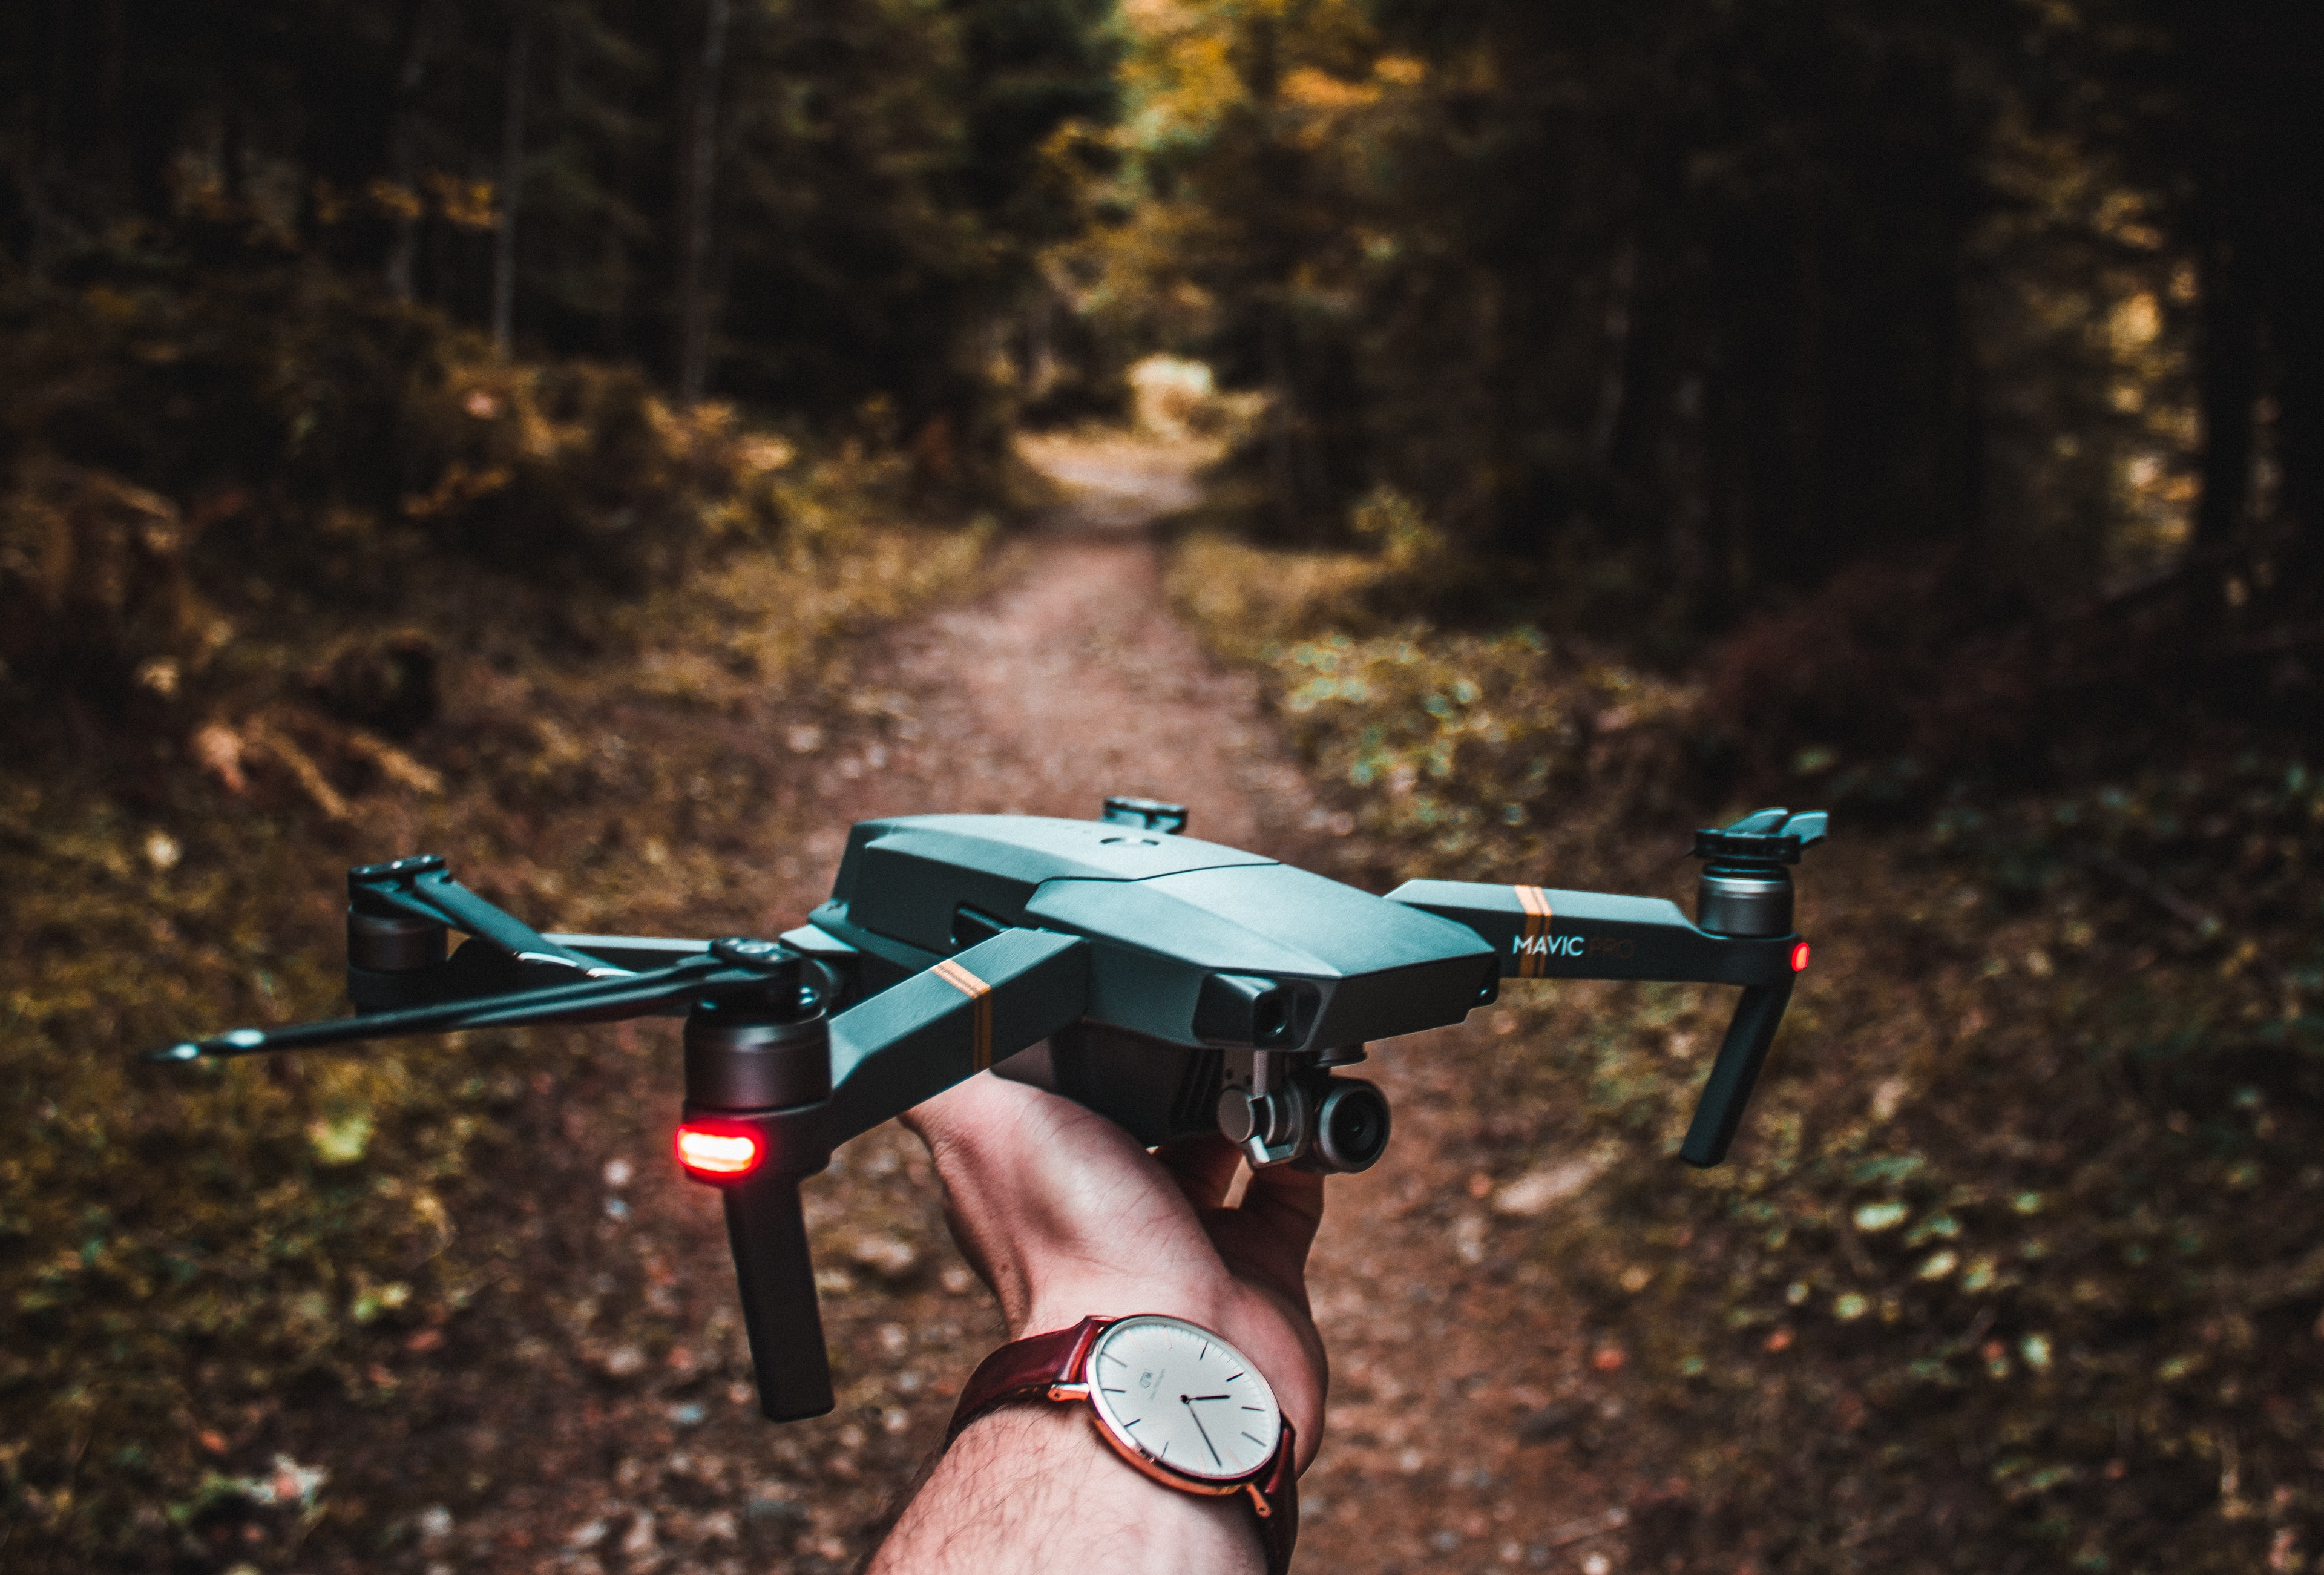 person holding black quadcopter